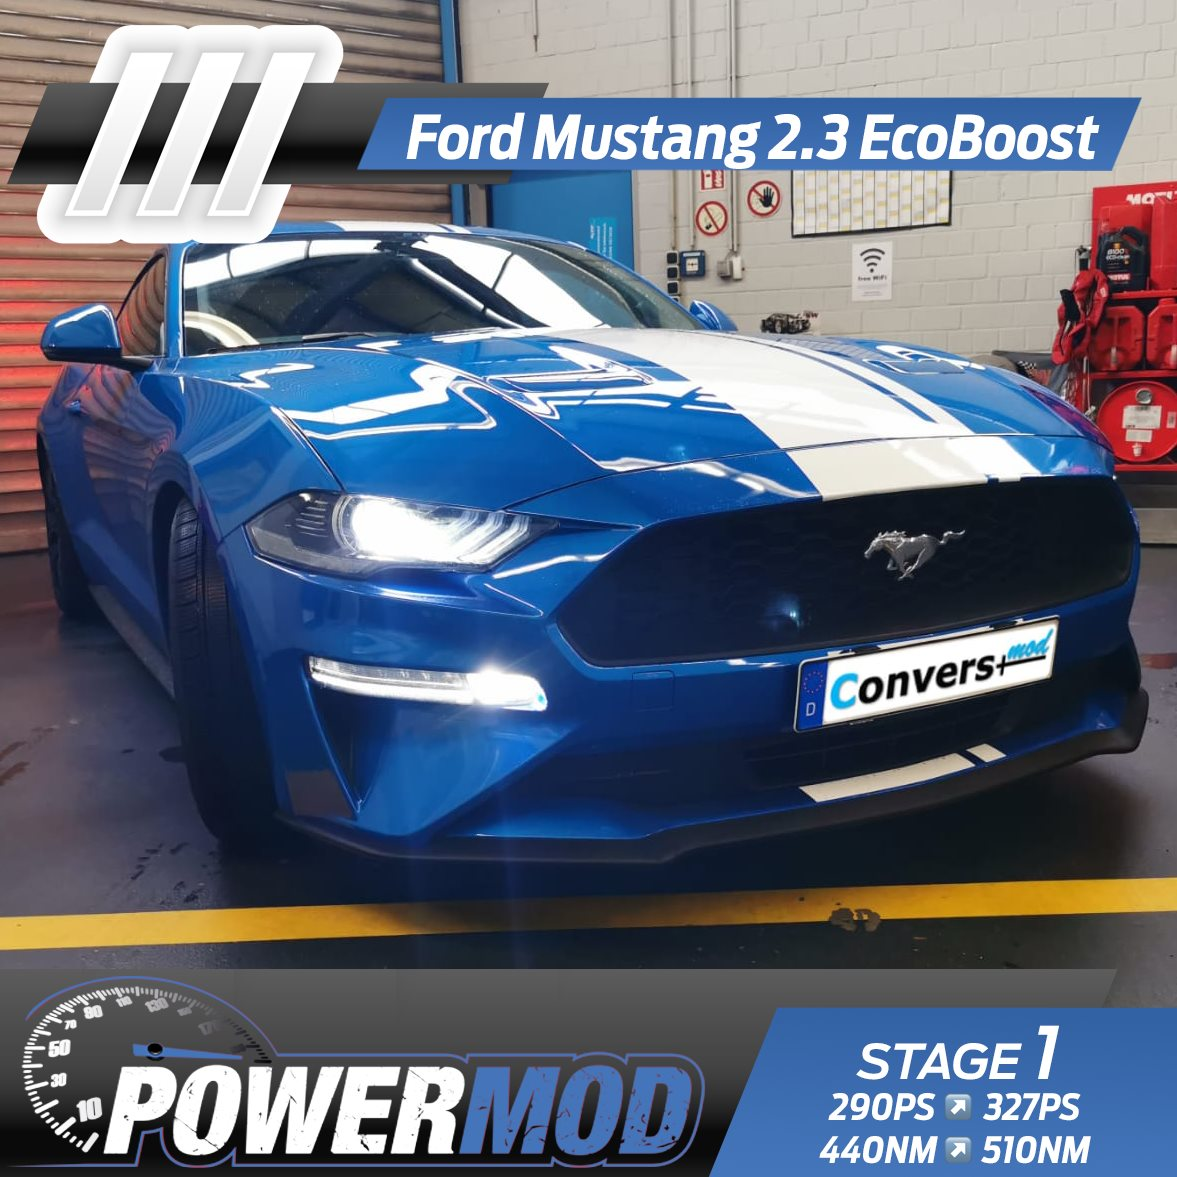 🔥 POWERMOD STAGE 1 🔥 🚗 Ford Mustang 2.3 EcoBoost 🚗 290 PS ↗️ 327 PS (+37PS) 440 NM ↗️ 510 NM (+70NM)